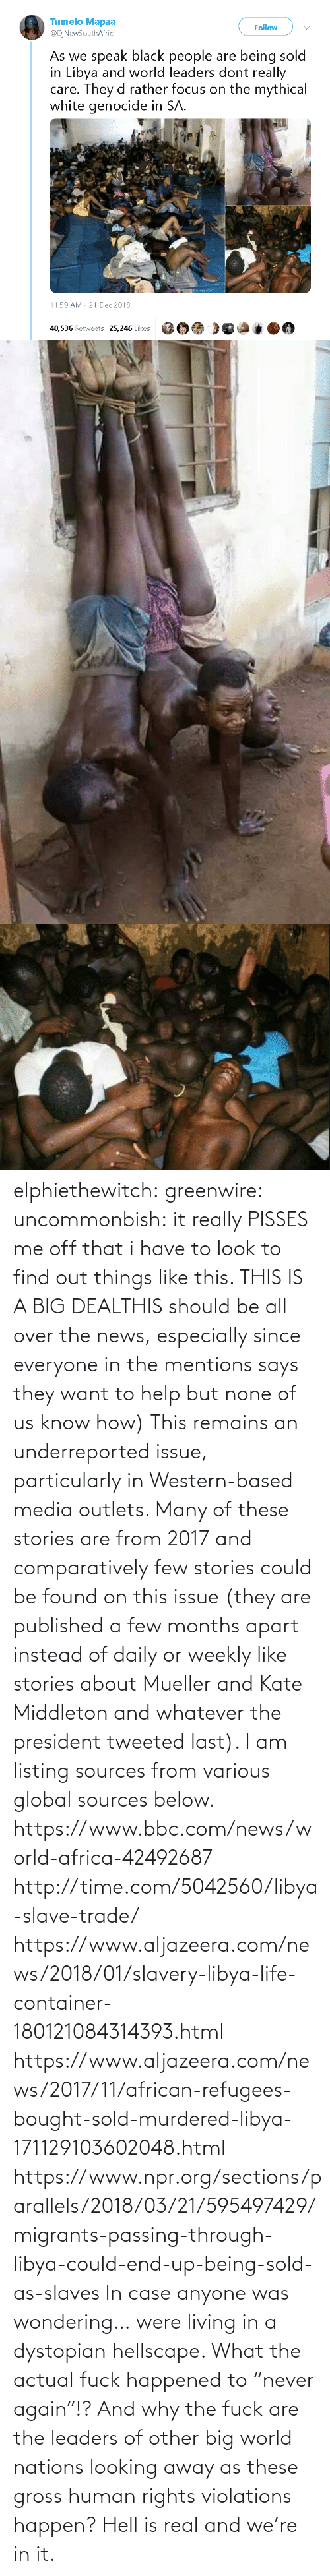 "png: elphiethewitch: greenwire:  uncommonbish:  it really PISSES me off that i have to look to find out things like this. THIS IS A BIG DEALTHIS should be all over the news, especially since everyone in the mentions says they want to help but none of us know how)  This remains an underreported issue, particularly in Western-based media outlets. Many of these stories are from 2017 and comparatively few stories could be found on this issue (they are published a few months apart instead of daily or weekly like stories about Mueller and Kate Middleton and whatever the president tweeted last). I am listing sources from various global sources below.  https://www.bbc.com/news/world-africa-42492687 http://time.com/5042560/libya-slave-trade/ https://www.aljazeera.com/news/2018/01/slavery-libya-life-container-180121084314393.html https://www.aljazeera.com/news/2017/11/african-refugees-bought-sold-murdered-libya-171129103602048.html https://www.npr.org/sections/parallels/2018/03/21/595497429/migrants-passing-through-libya-could-end-up-being-sold-as-slaves   In case anyone was wondering… were living in a dystopian hellscape.  What the actual fuck happened to ""never again""!? And why the fuck are the leaders of other big world nations looking away as these gross human rights violations happen?  Hell is real and we're in it."